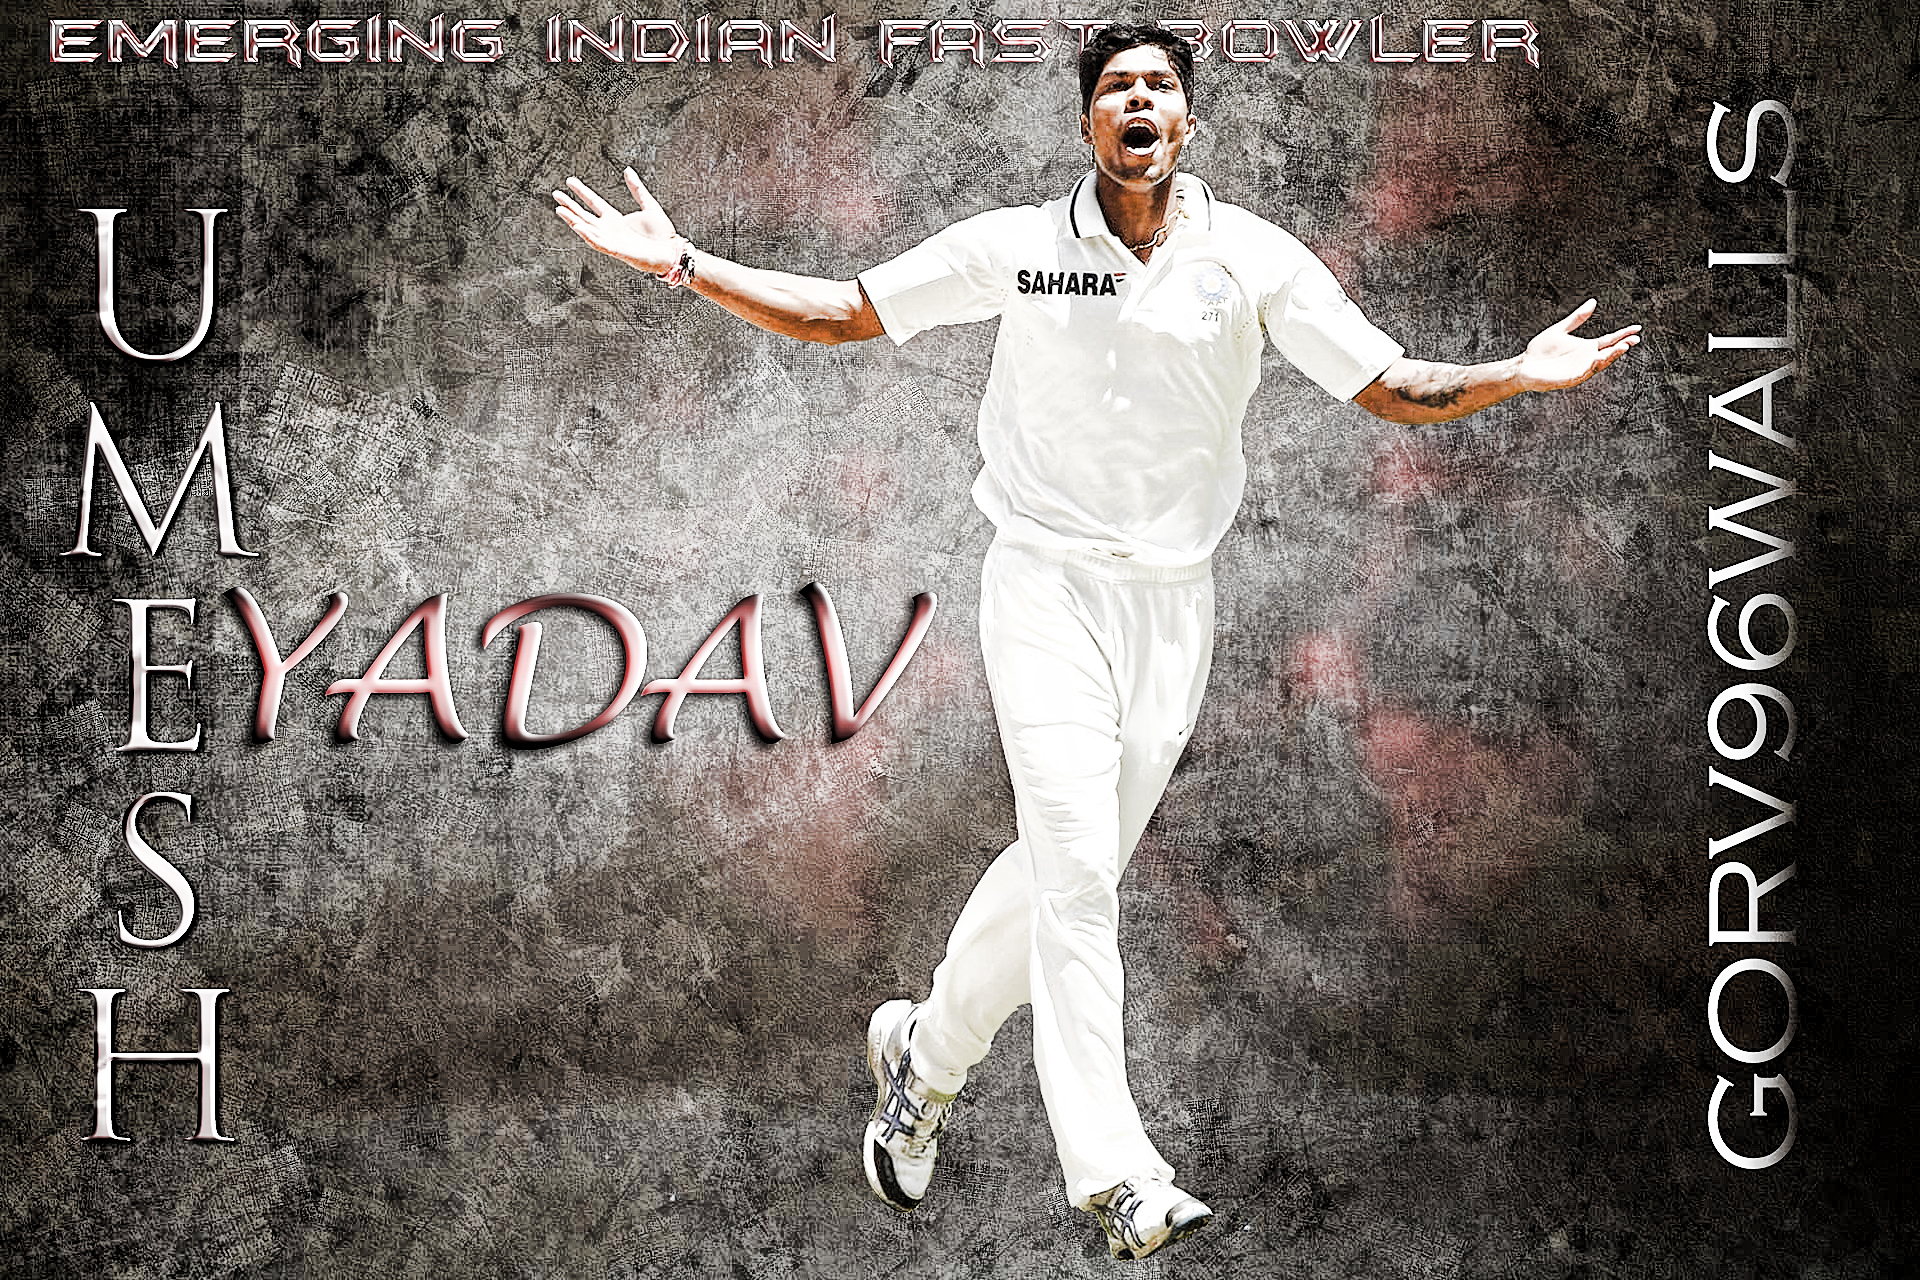 Umesh Yadav Full Hd Wallpaper And Background Image -1126